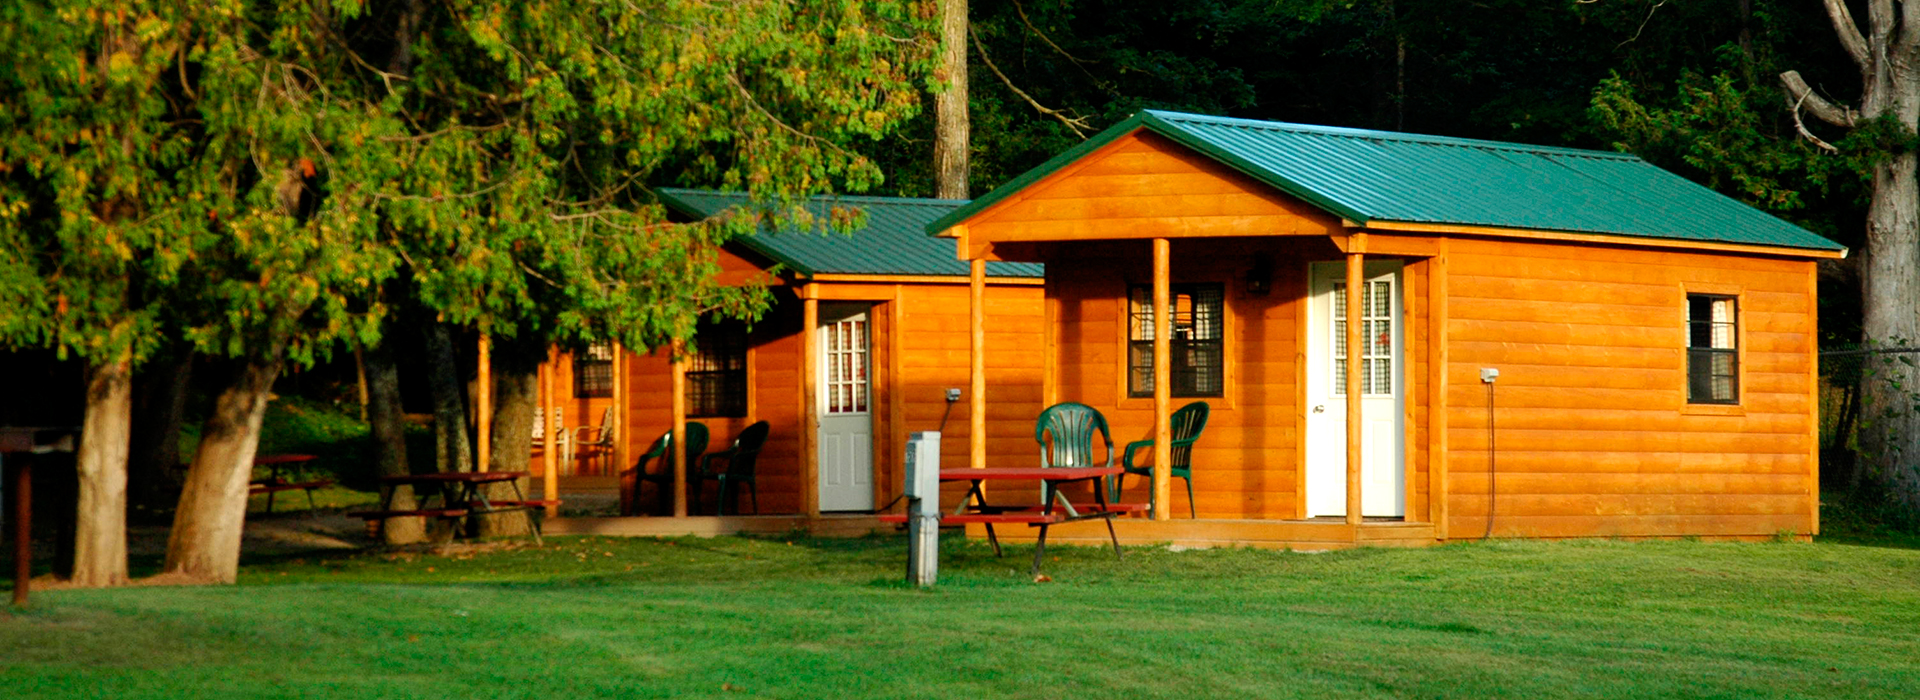 ocean vacation rentals city cabins md copy camping frontier town